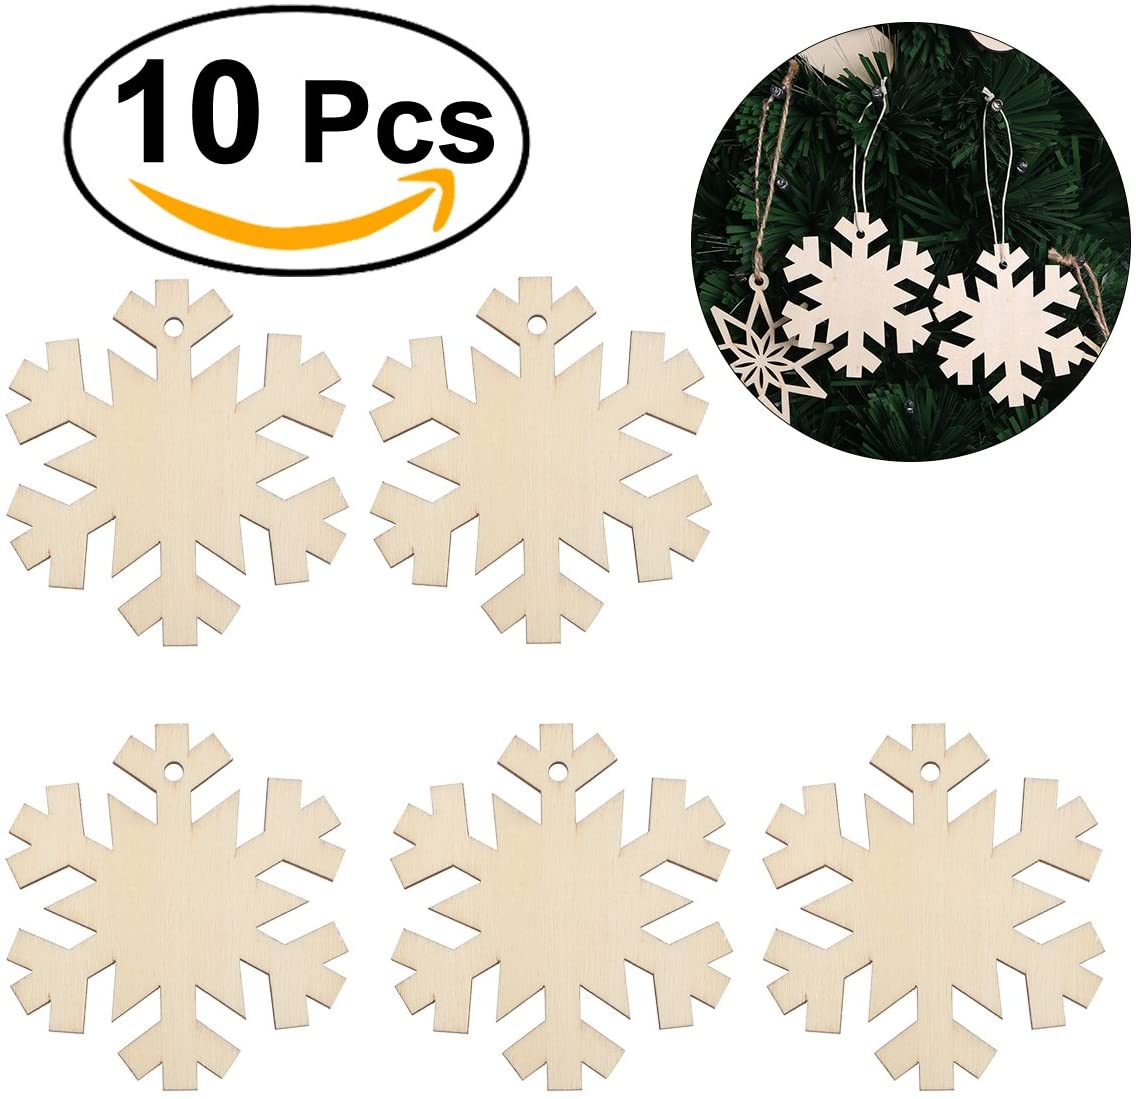 OULII Christmas Snowflake Wooden Hanging Ornaments Embellishments for Christmas Tree Home Decoration 10pcs